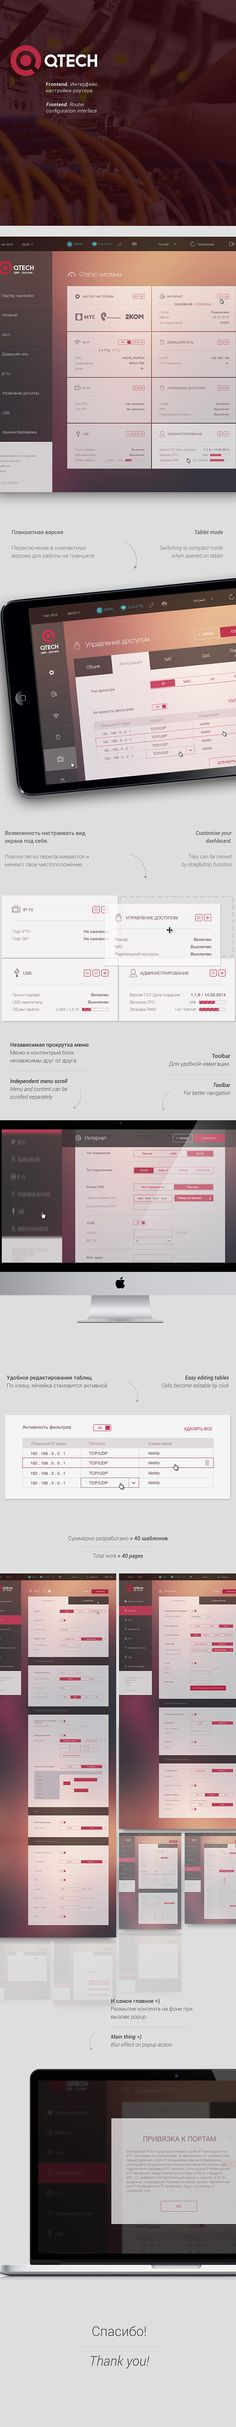 QTECH - Router configuration interface on Behance